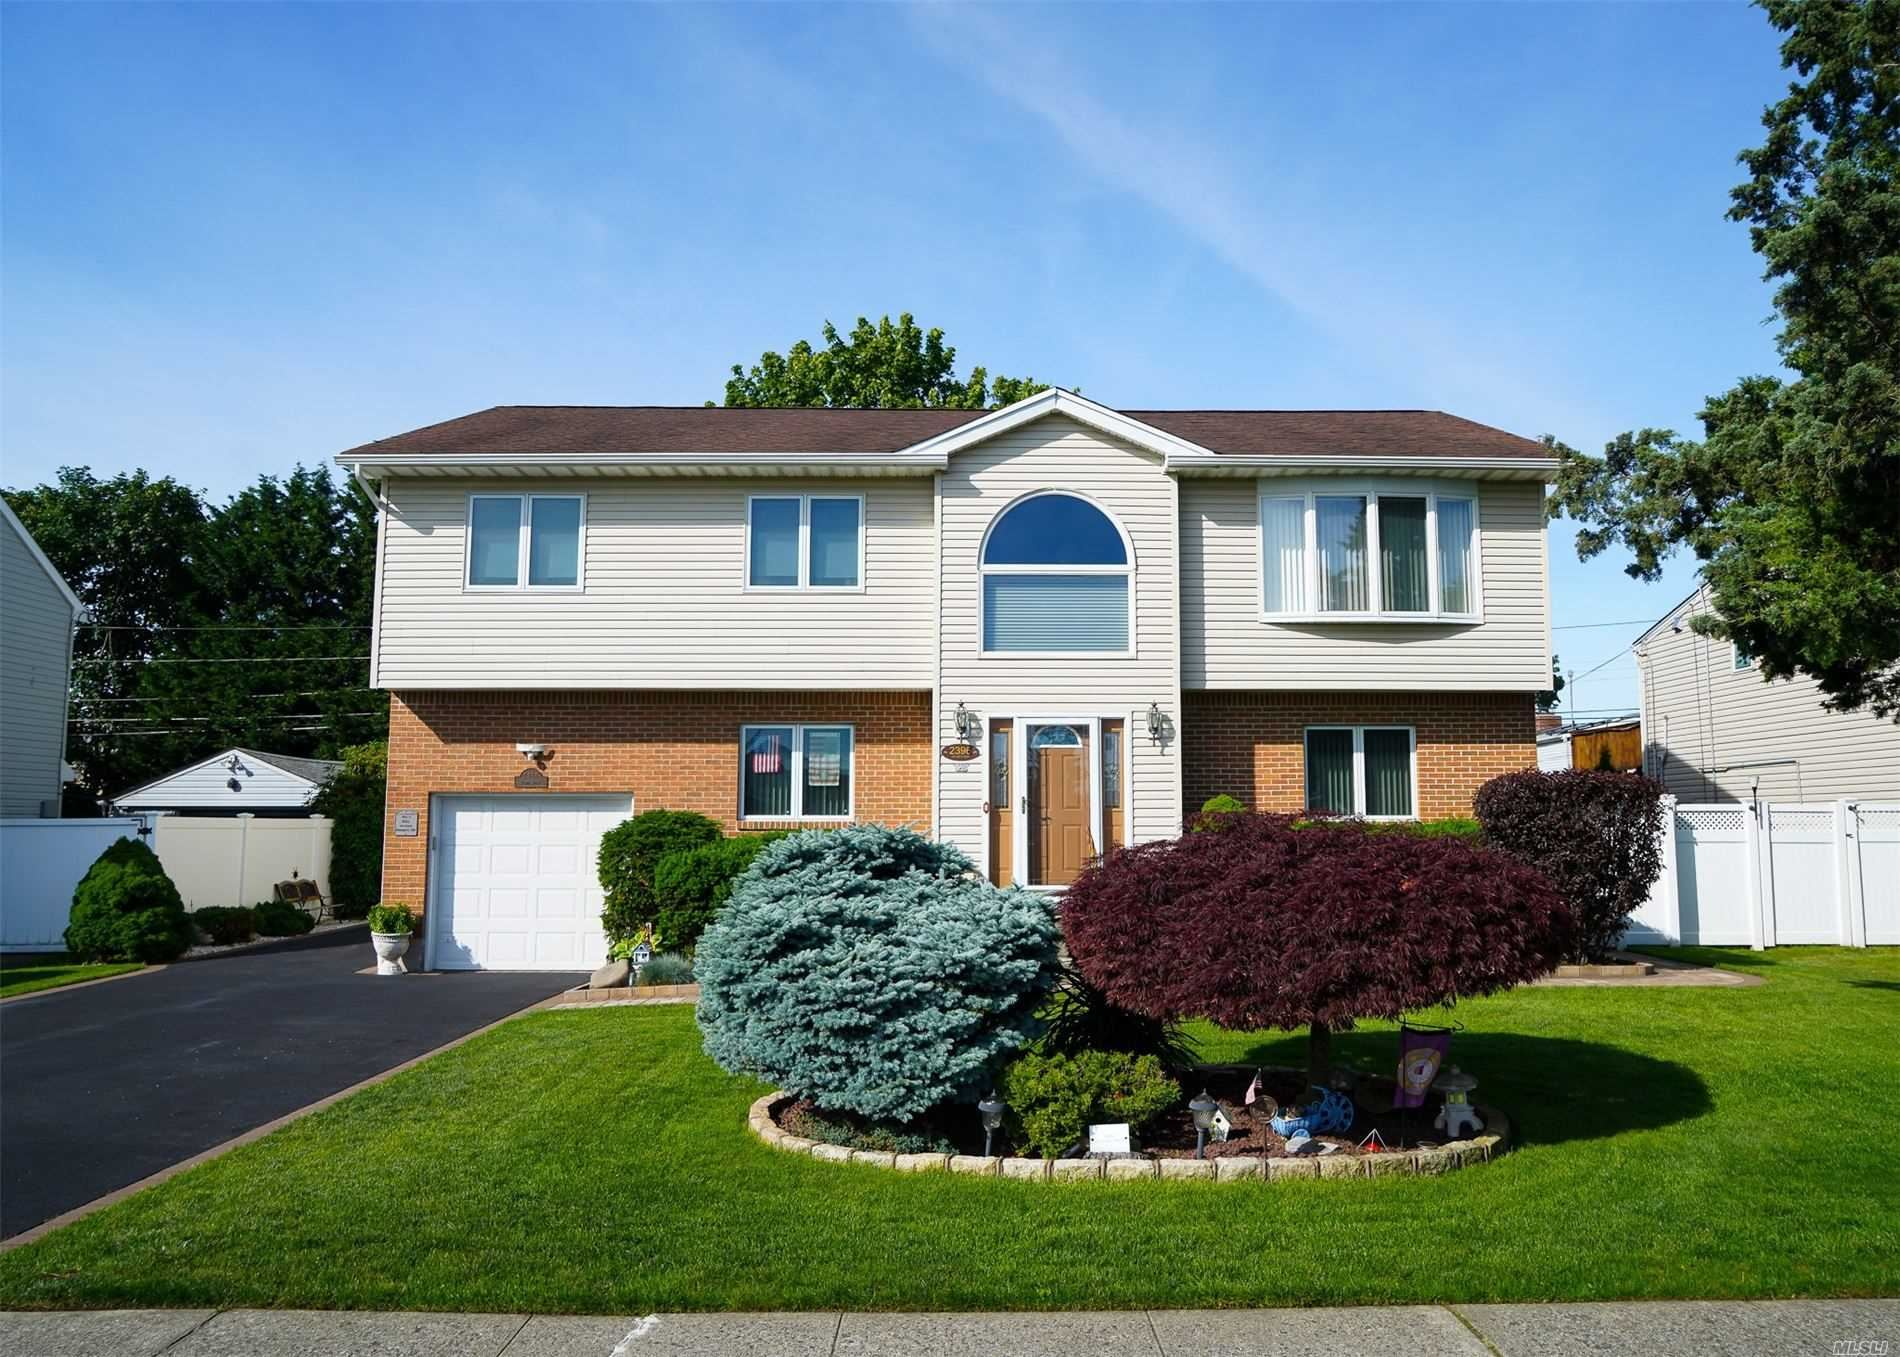 2396 2nd St, East Meadow, NY 11554 - MLS#: 3223257